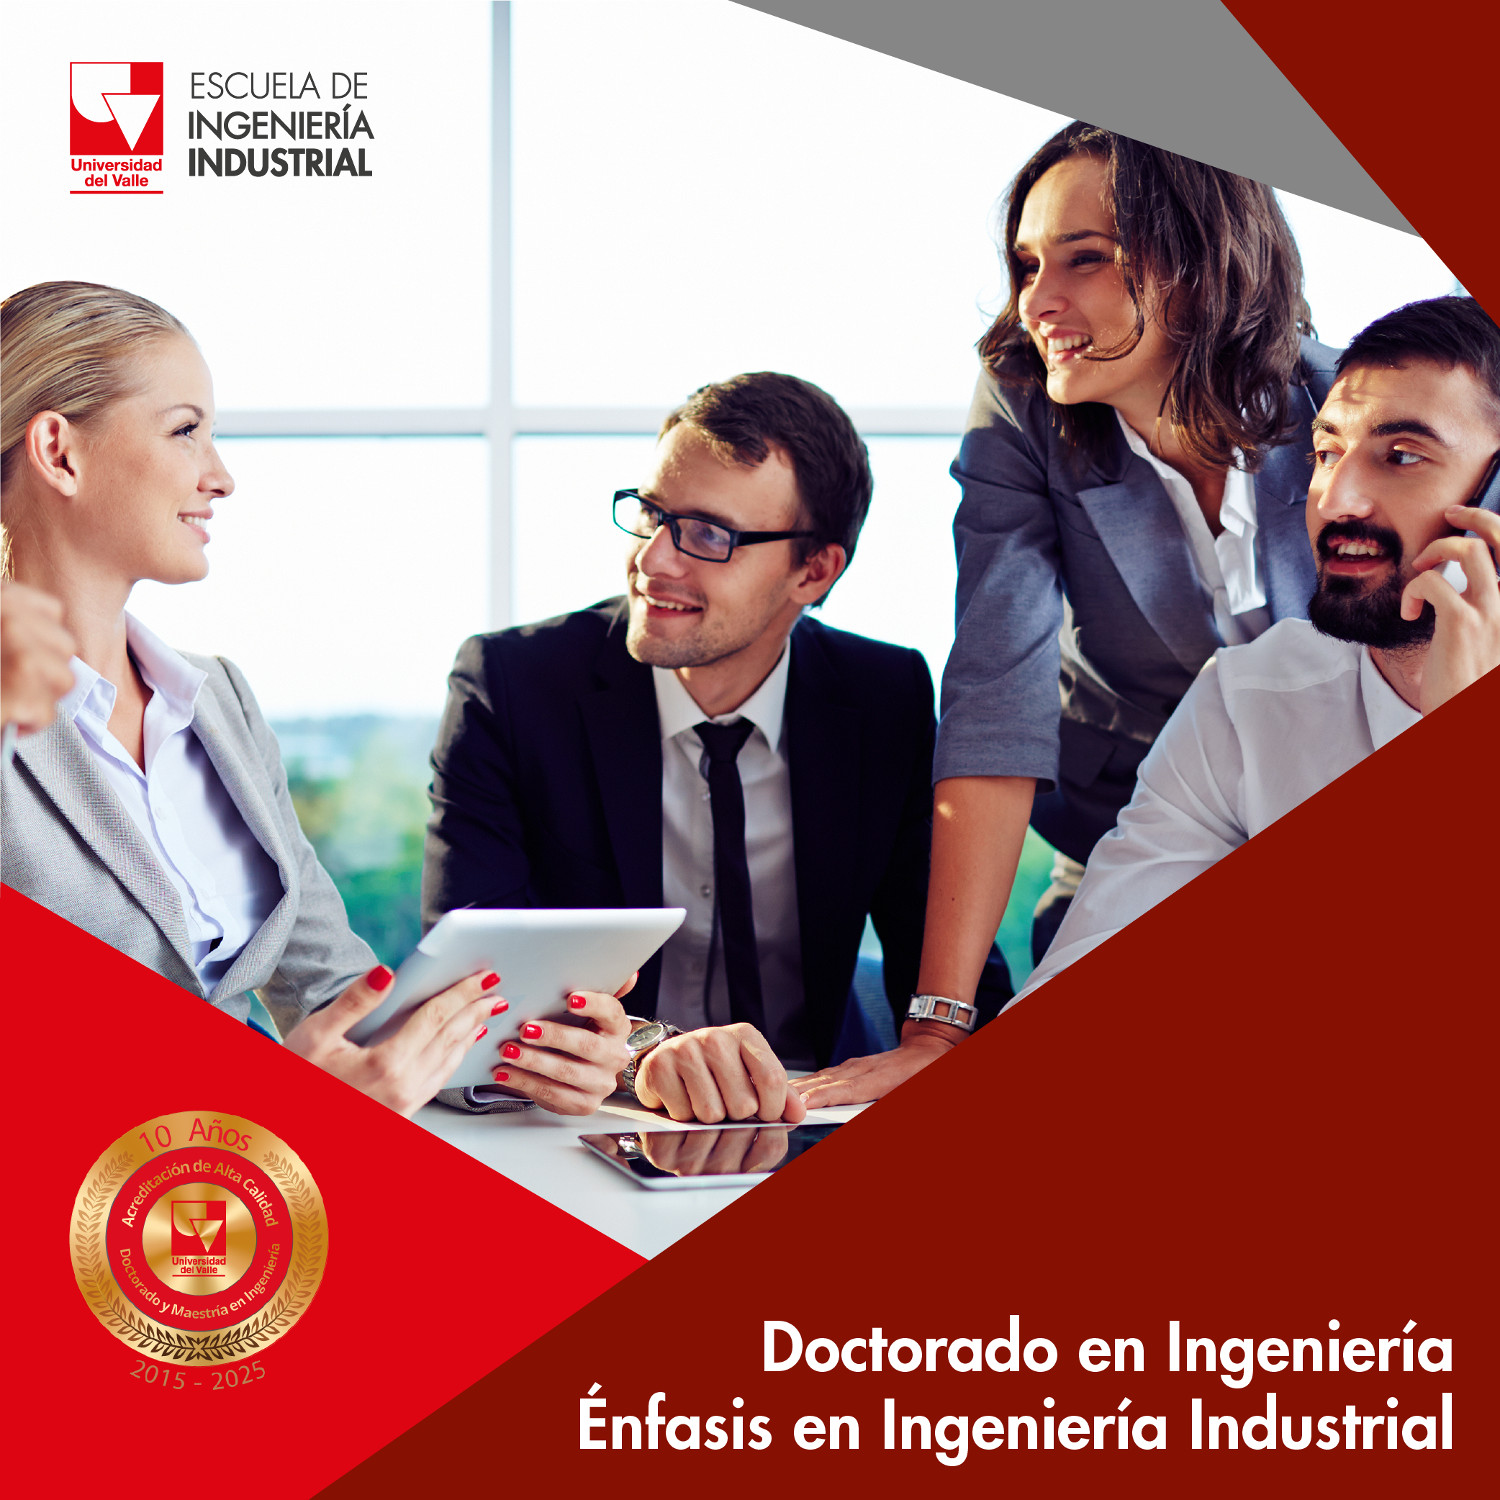 BROCHURE DOCTORADO INGENIERIA 20180420